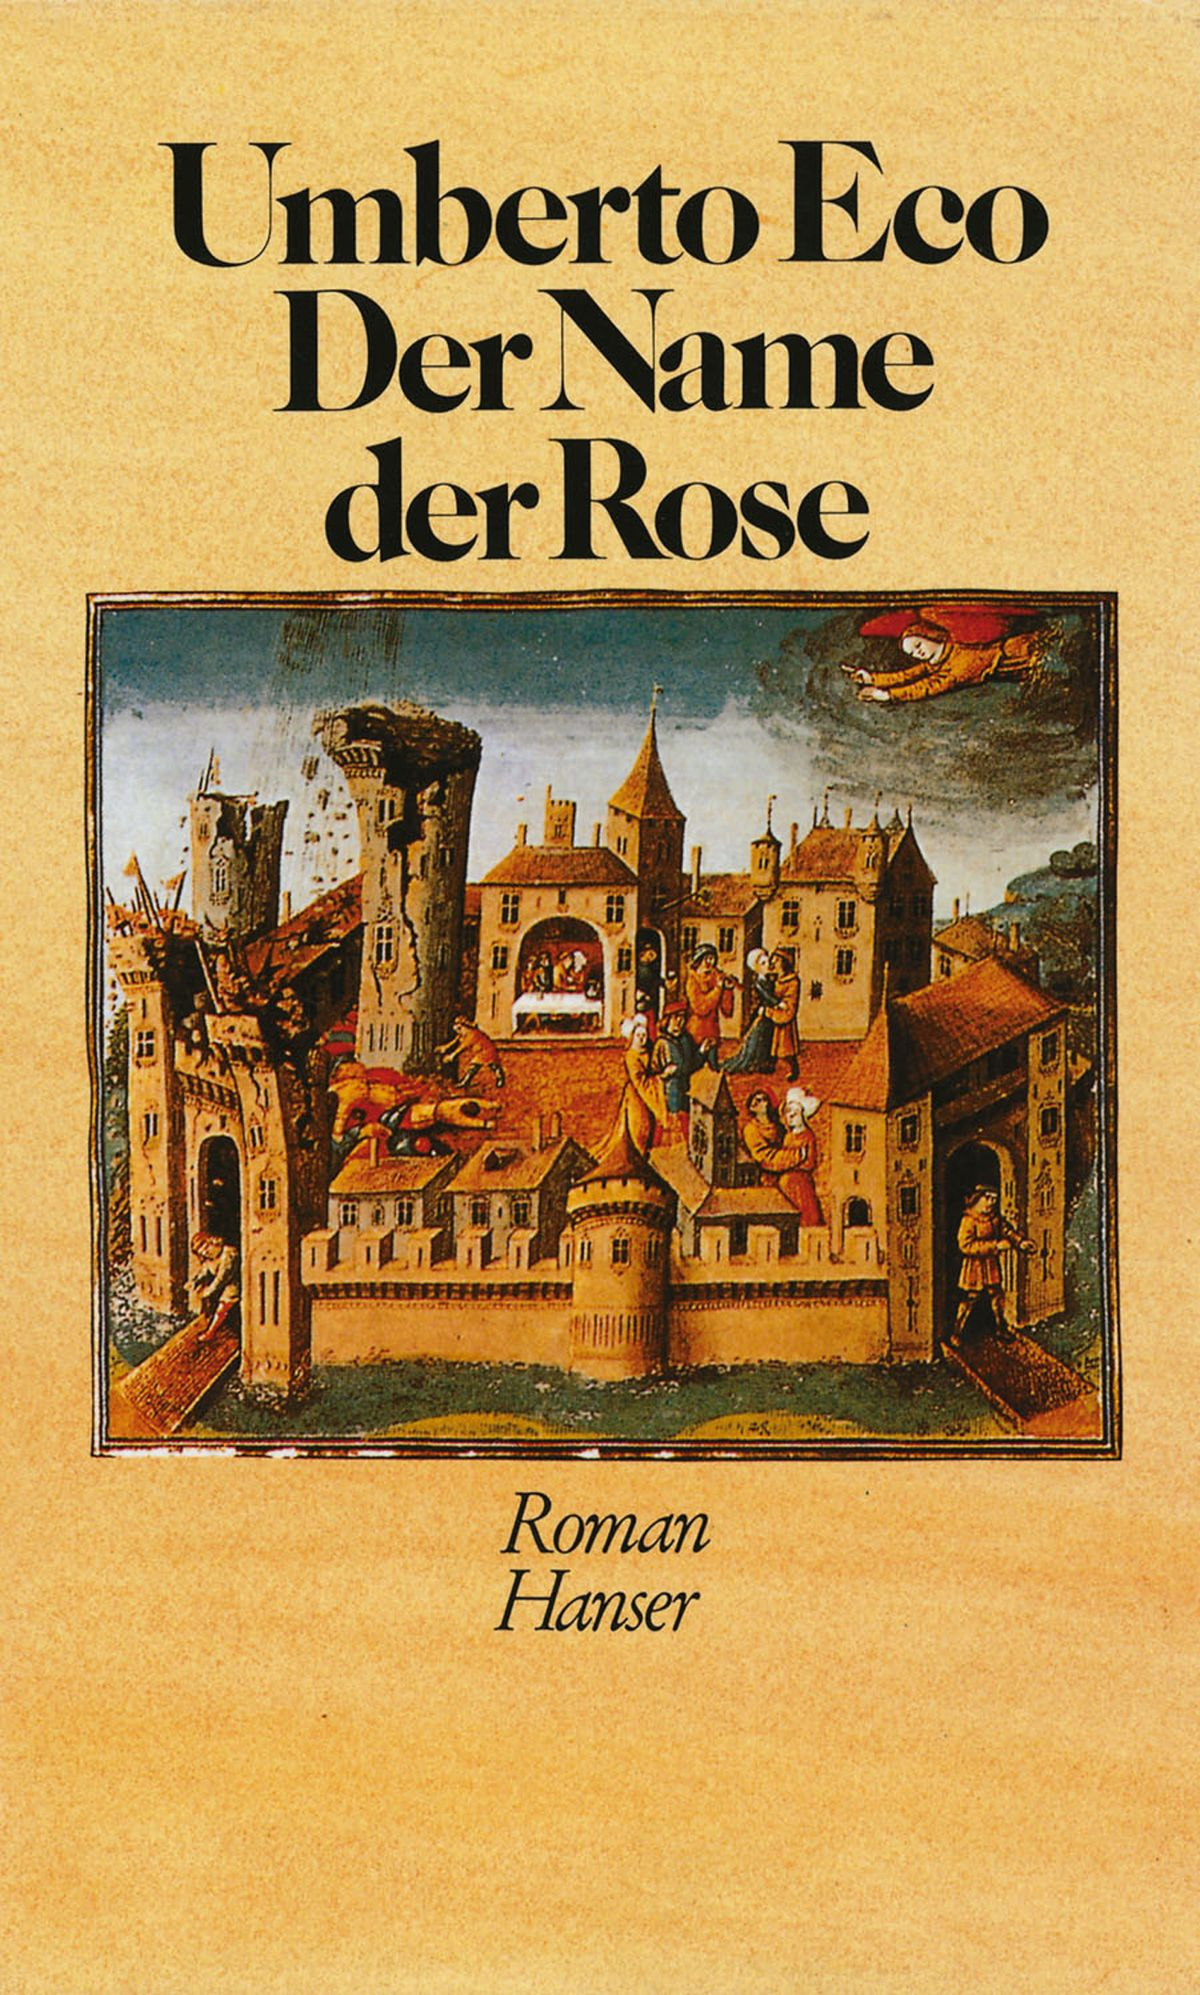 name of the rose essay on Published: mon, 5 dec 2016 the war of the roses affected england's throne for many years, thereby changing the outlook of the country the war of the roses was a civil war between the house of york and the house of lancaster.